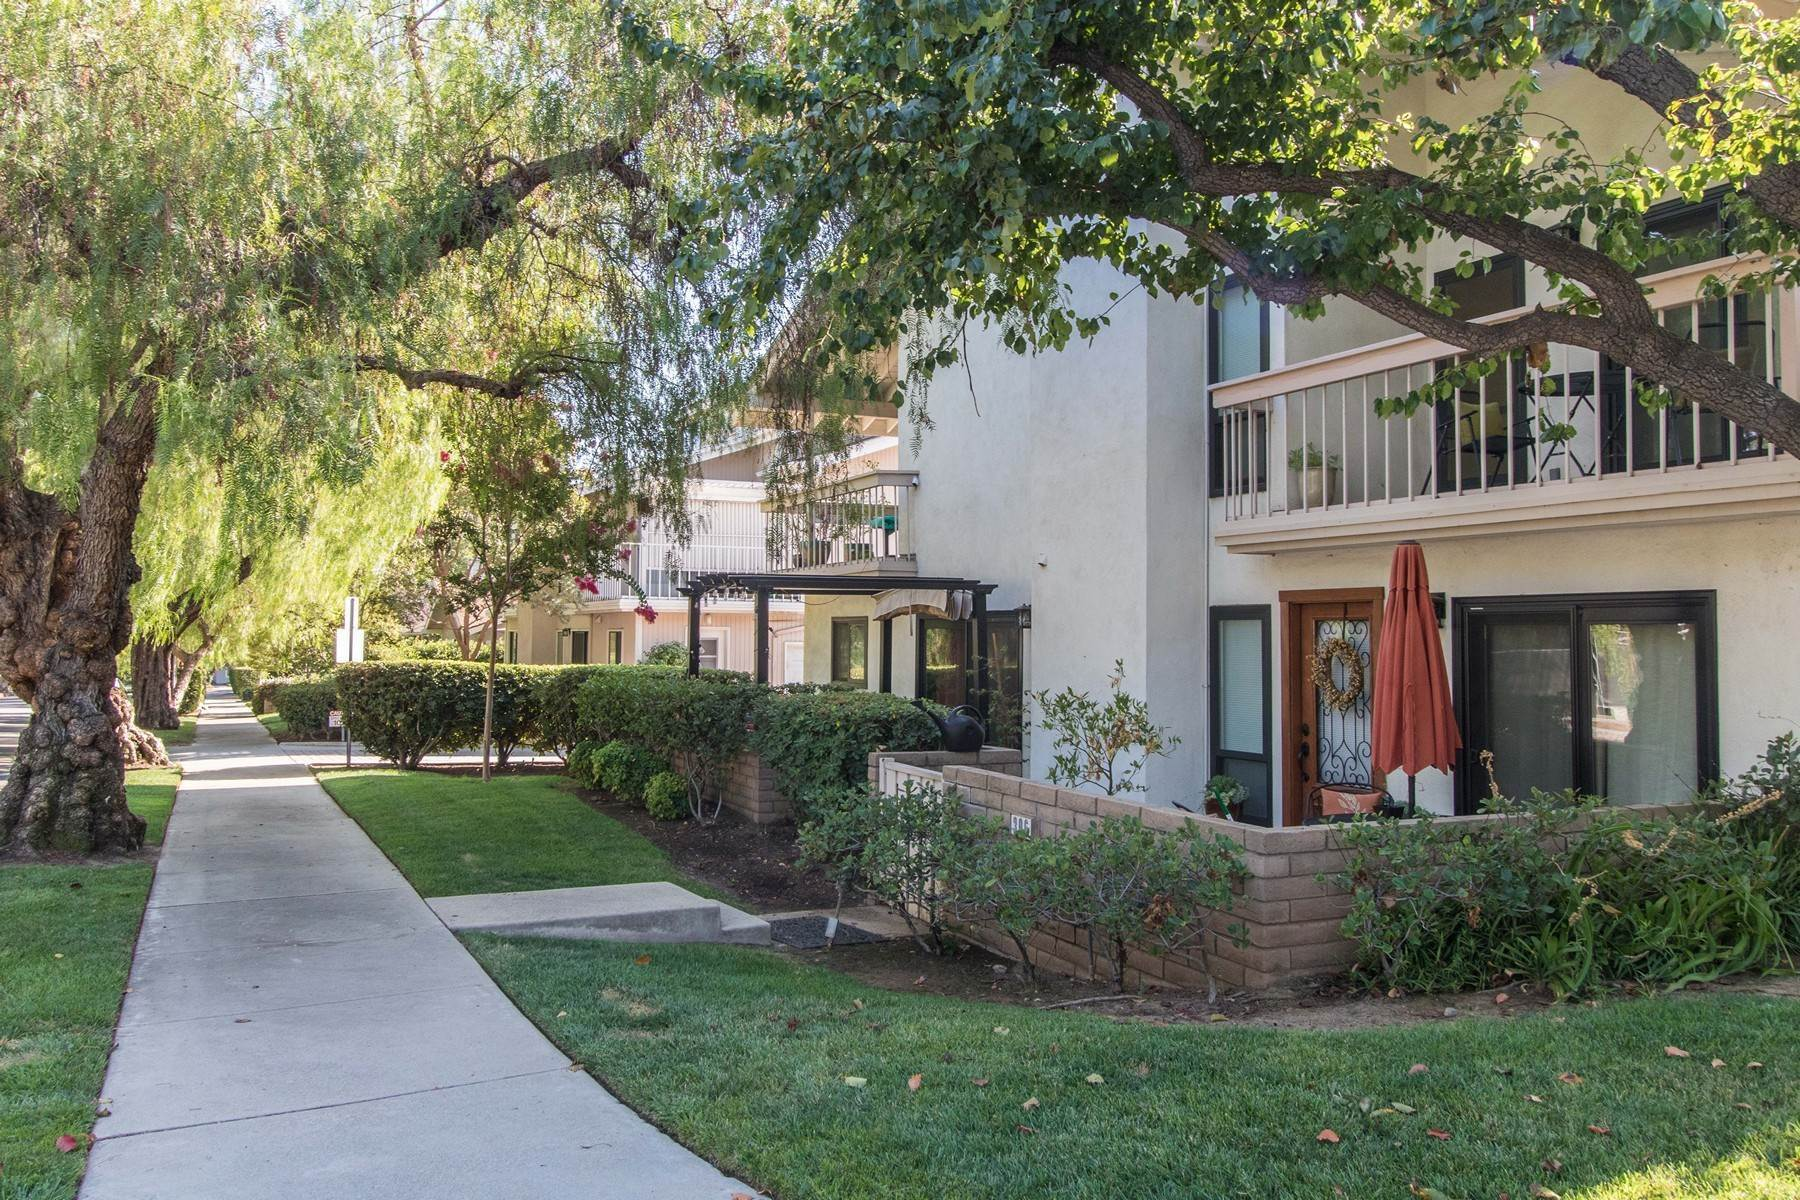 townhouses for Sale at 340 Claremont 7th Street, Claremont, CA 91711 340 W. 7th Street Claremont, California 91711 United States